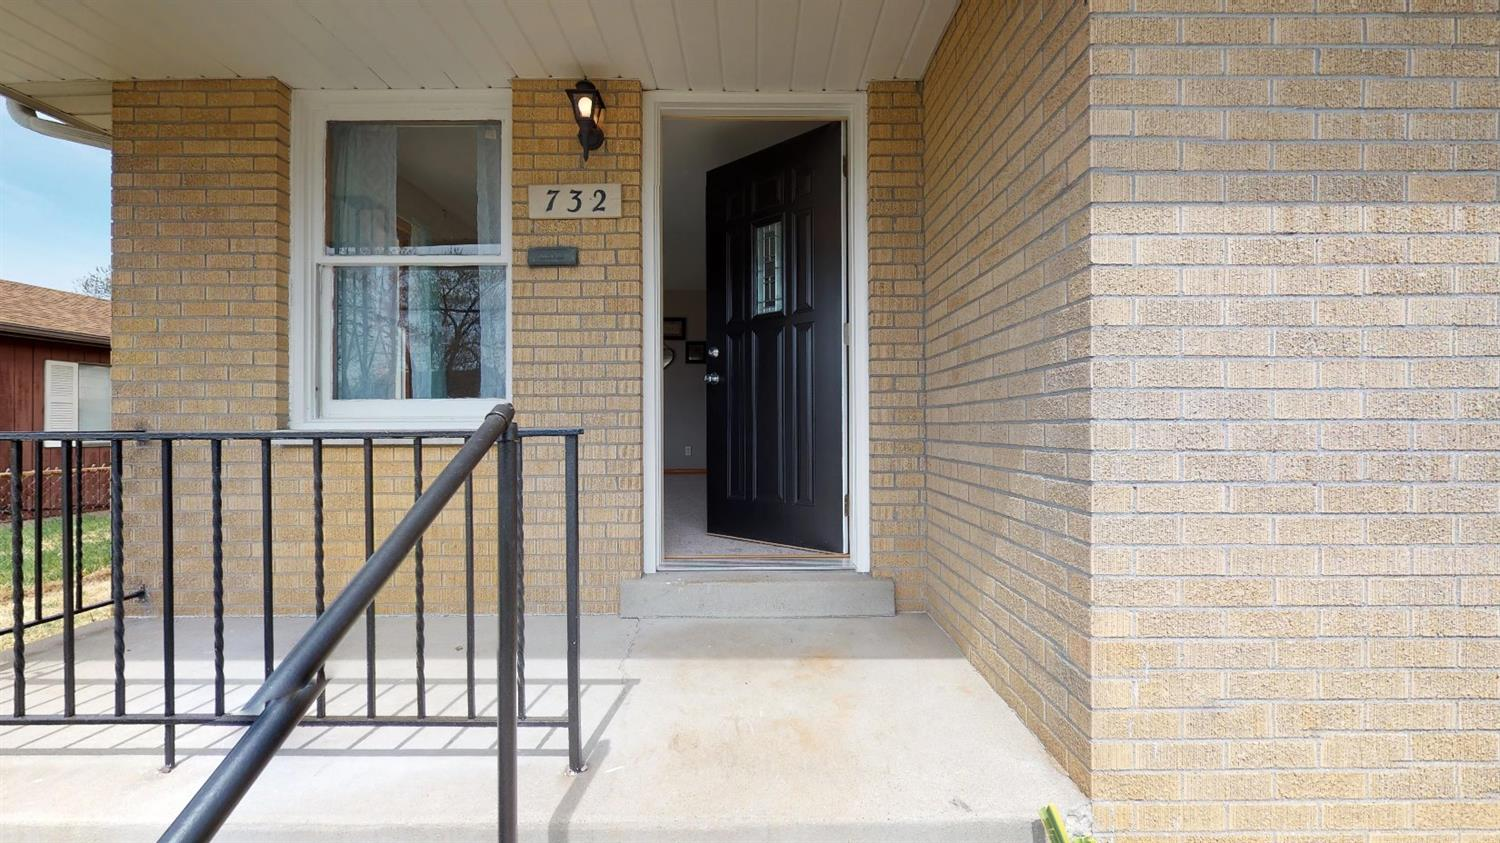 Photo 3 for 732 St Clair Ave Lindenwald, OH 45015